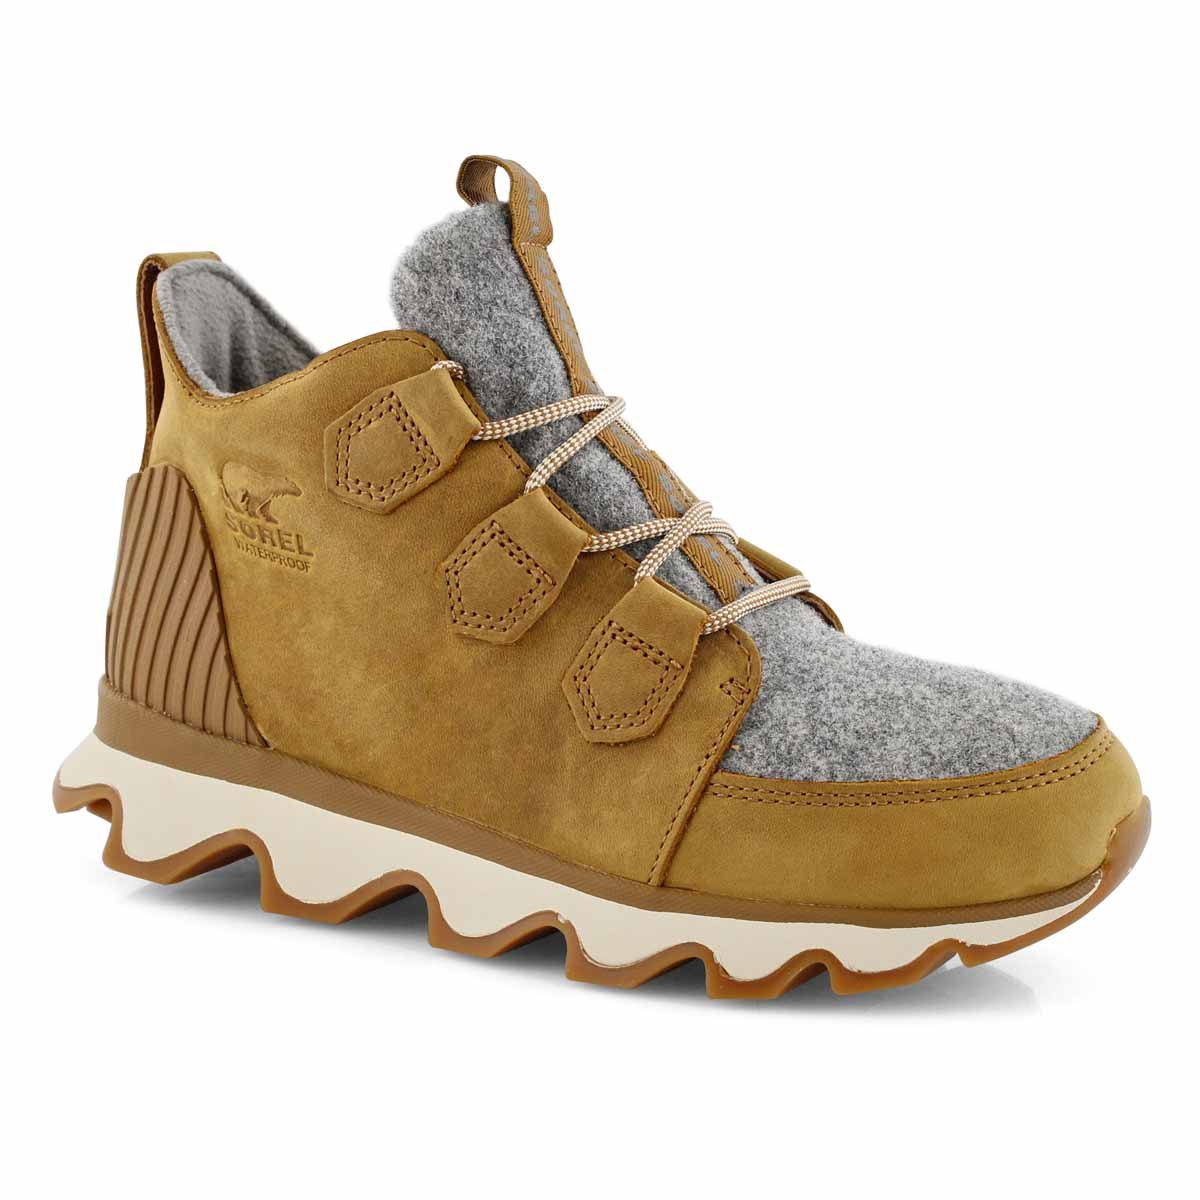 Lds Kinetic Caribou camel wtp ankle boot